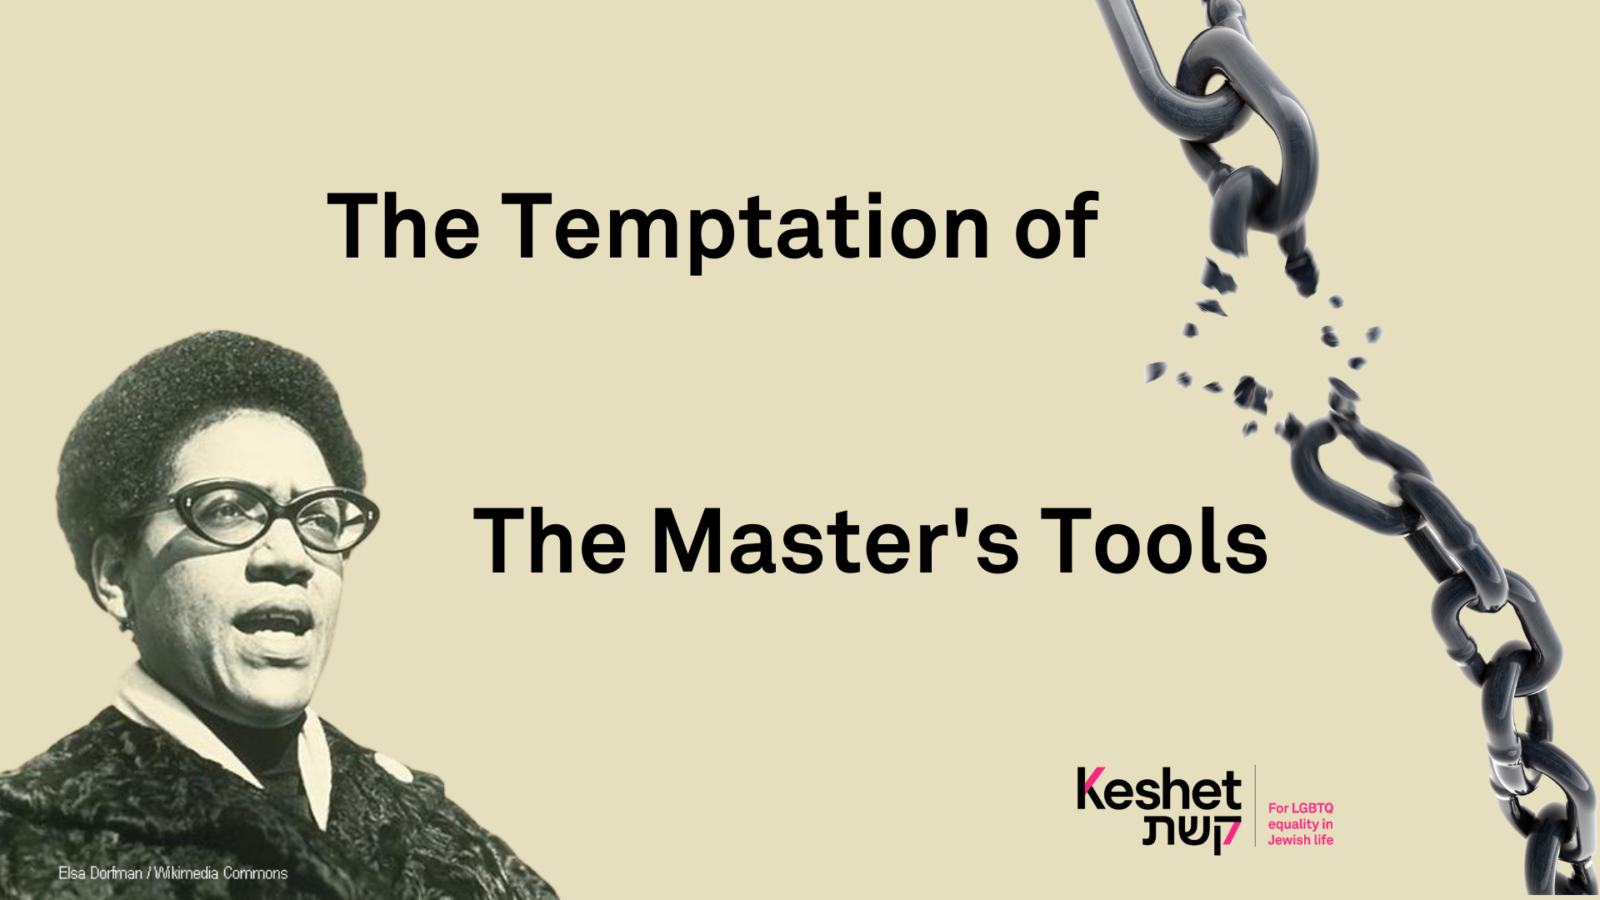 The Temptation of the Master's Tools